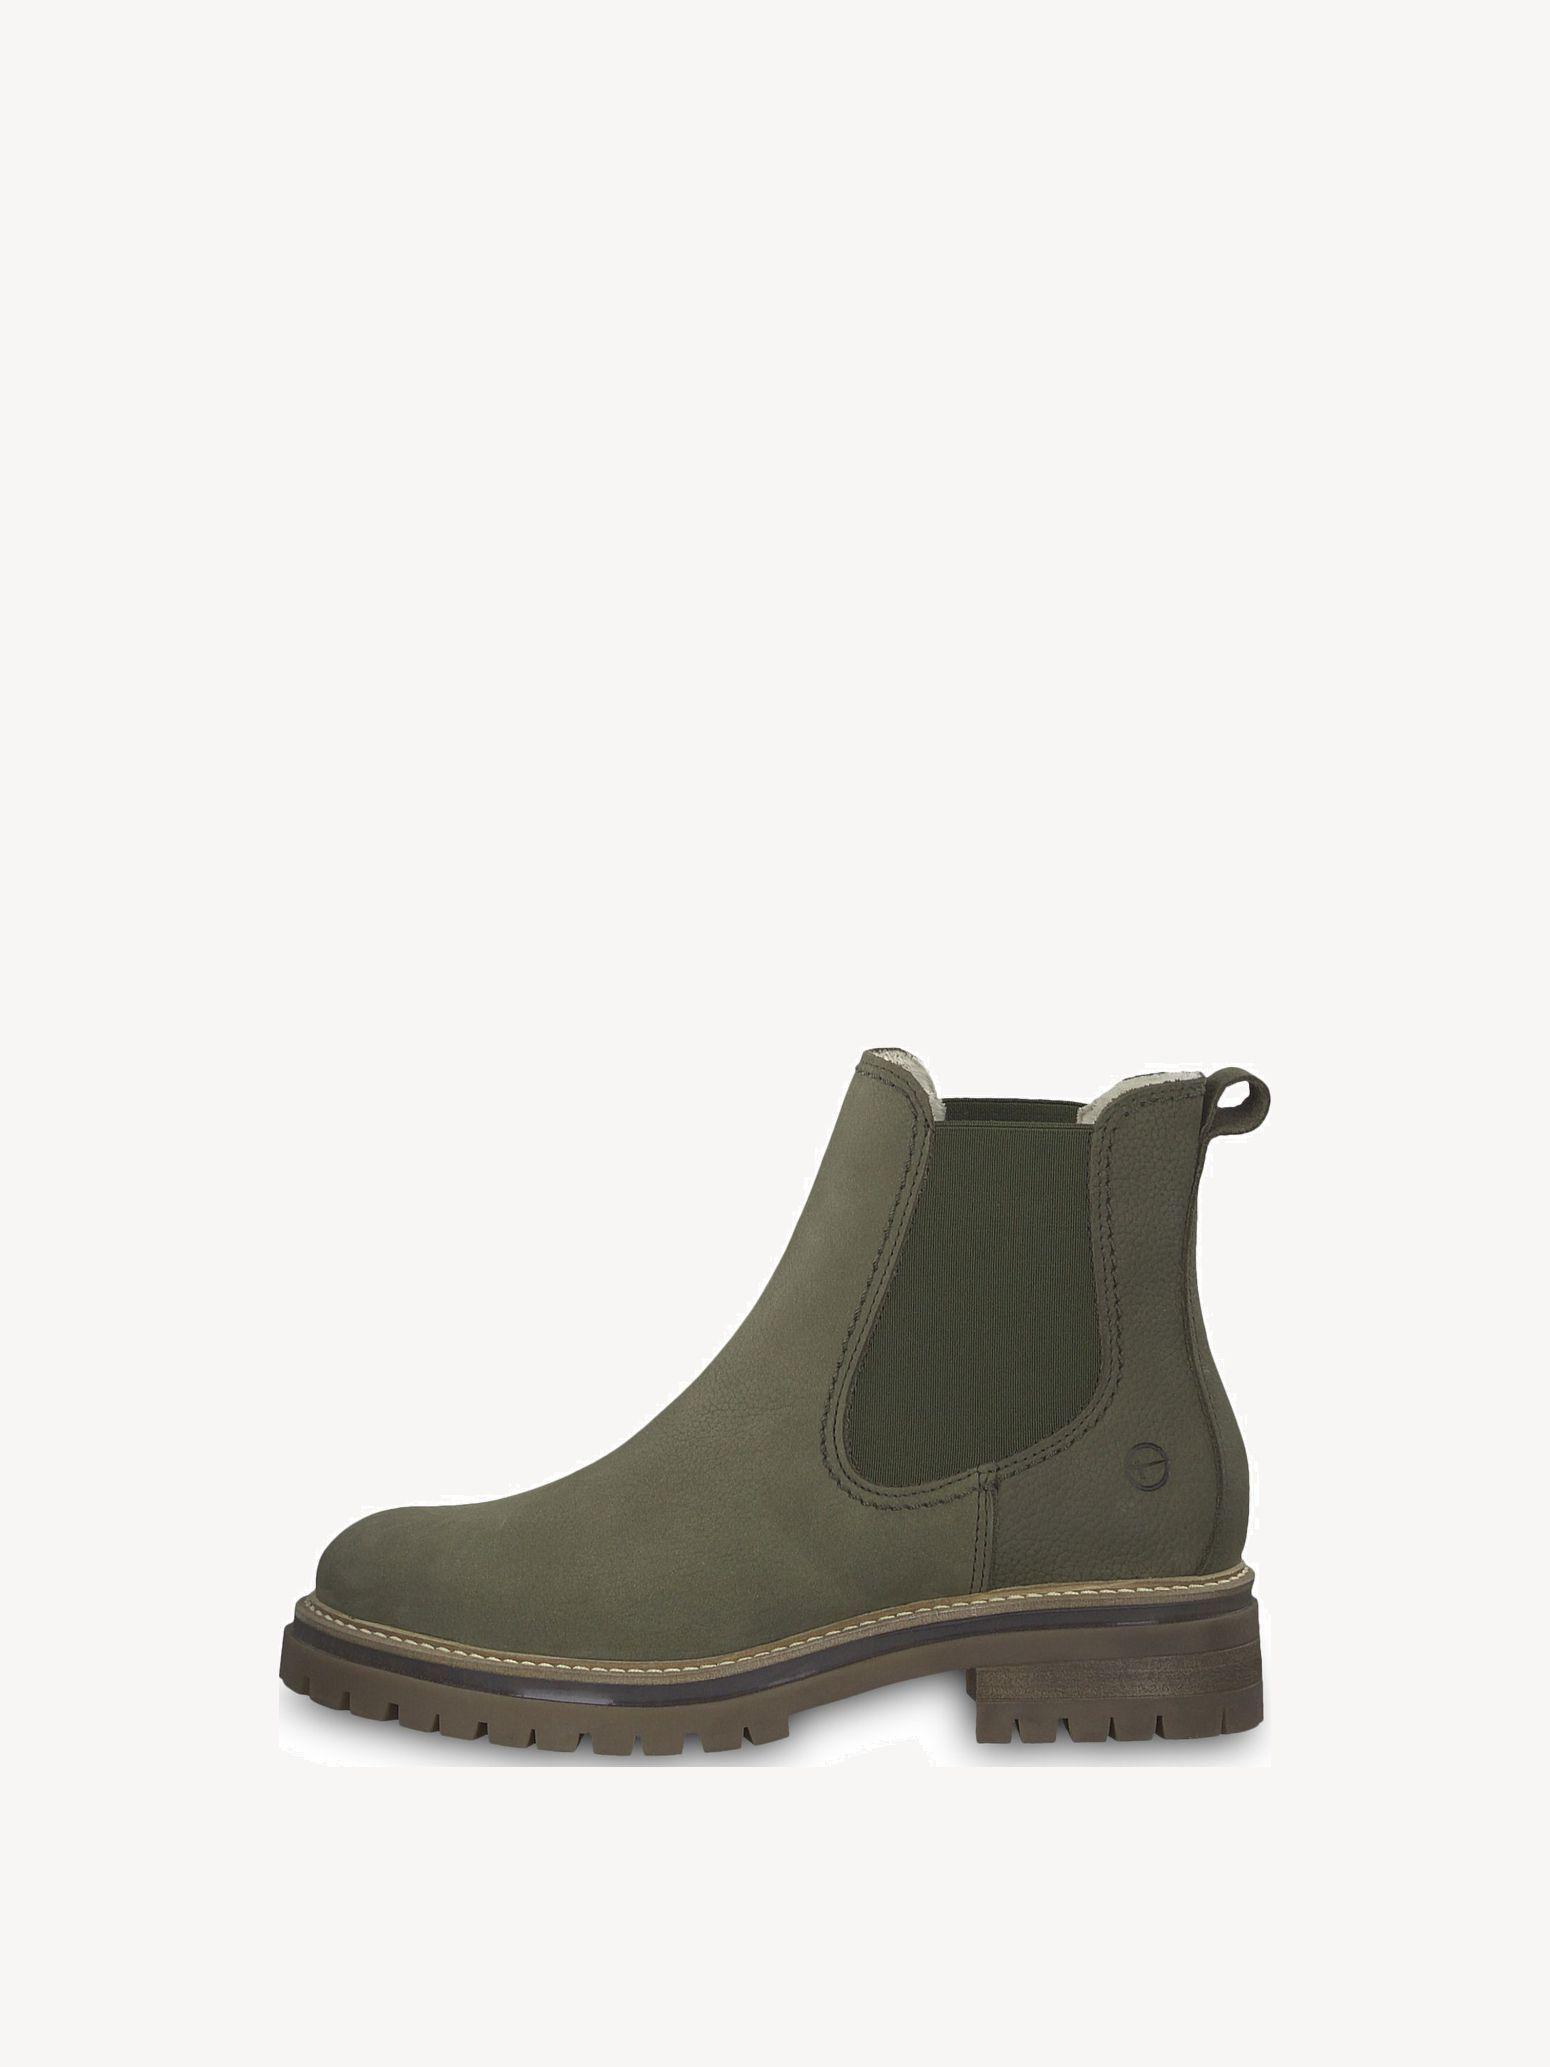 TAMARIS Lace up Boots green olive